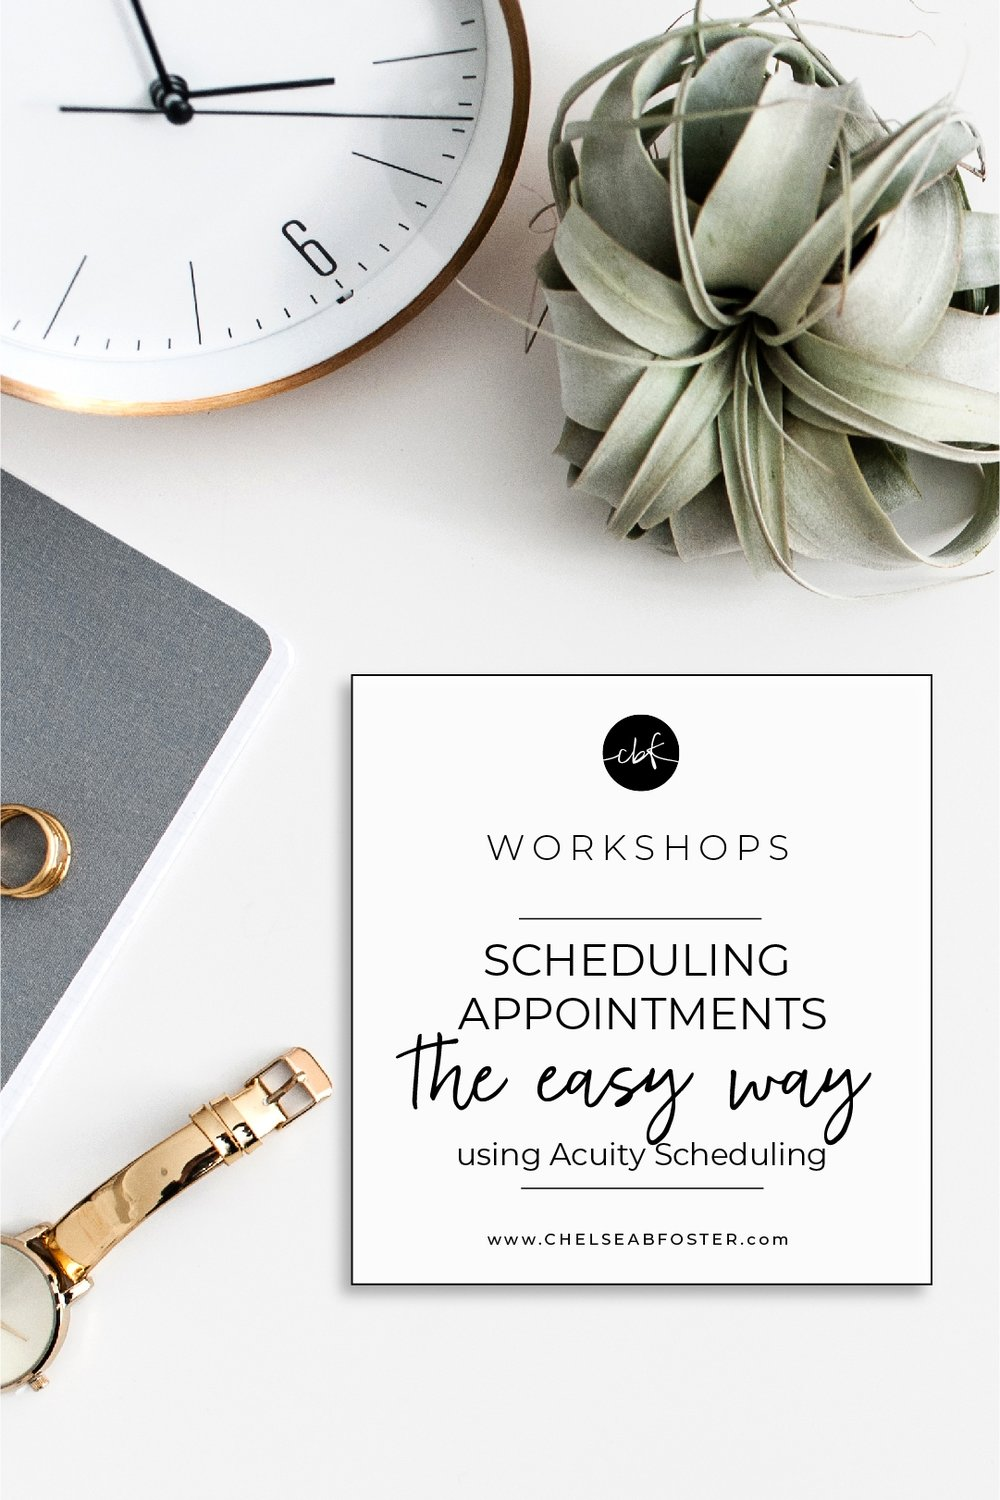 Scheduling Appointments - The Easy Way - using Acuity Scheduling